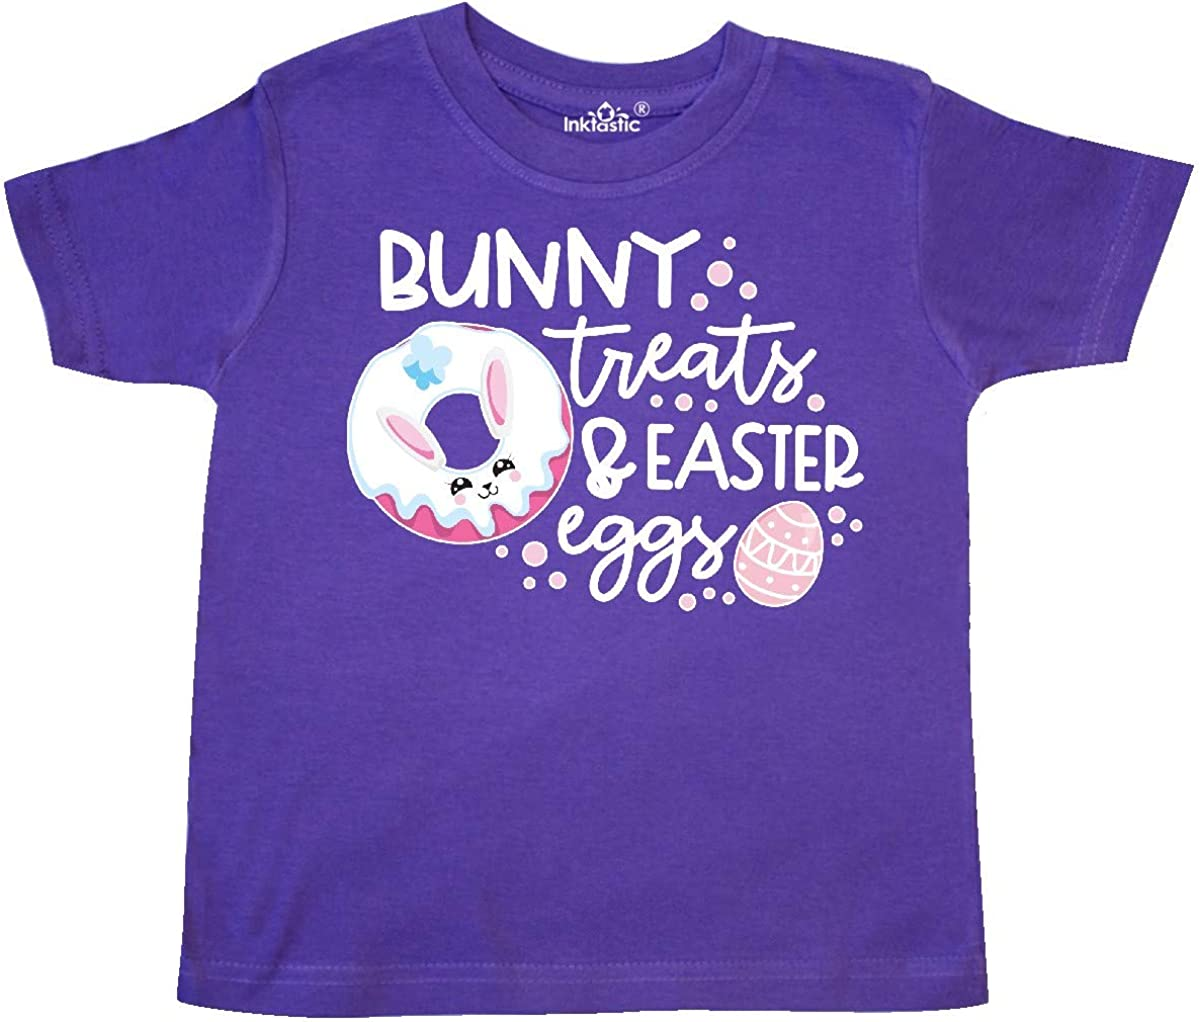 inktastic Easter Bunny Treats and Easter Eggs Toddler T-Shirt